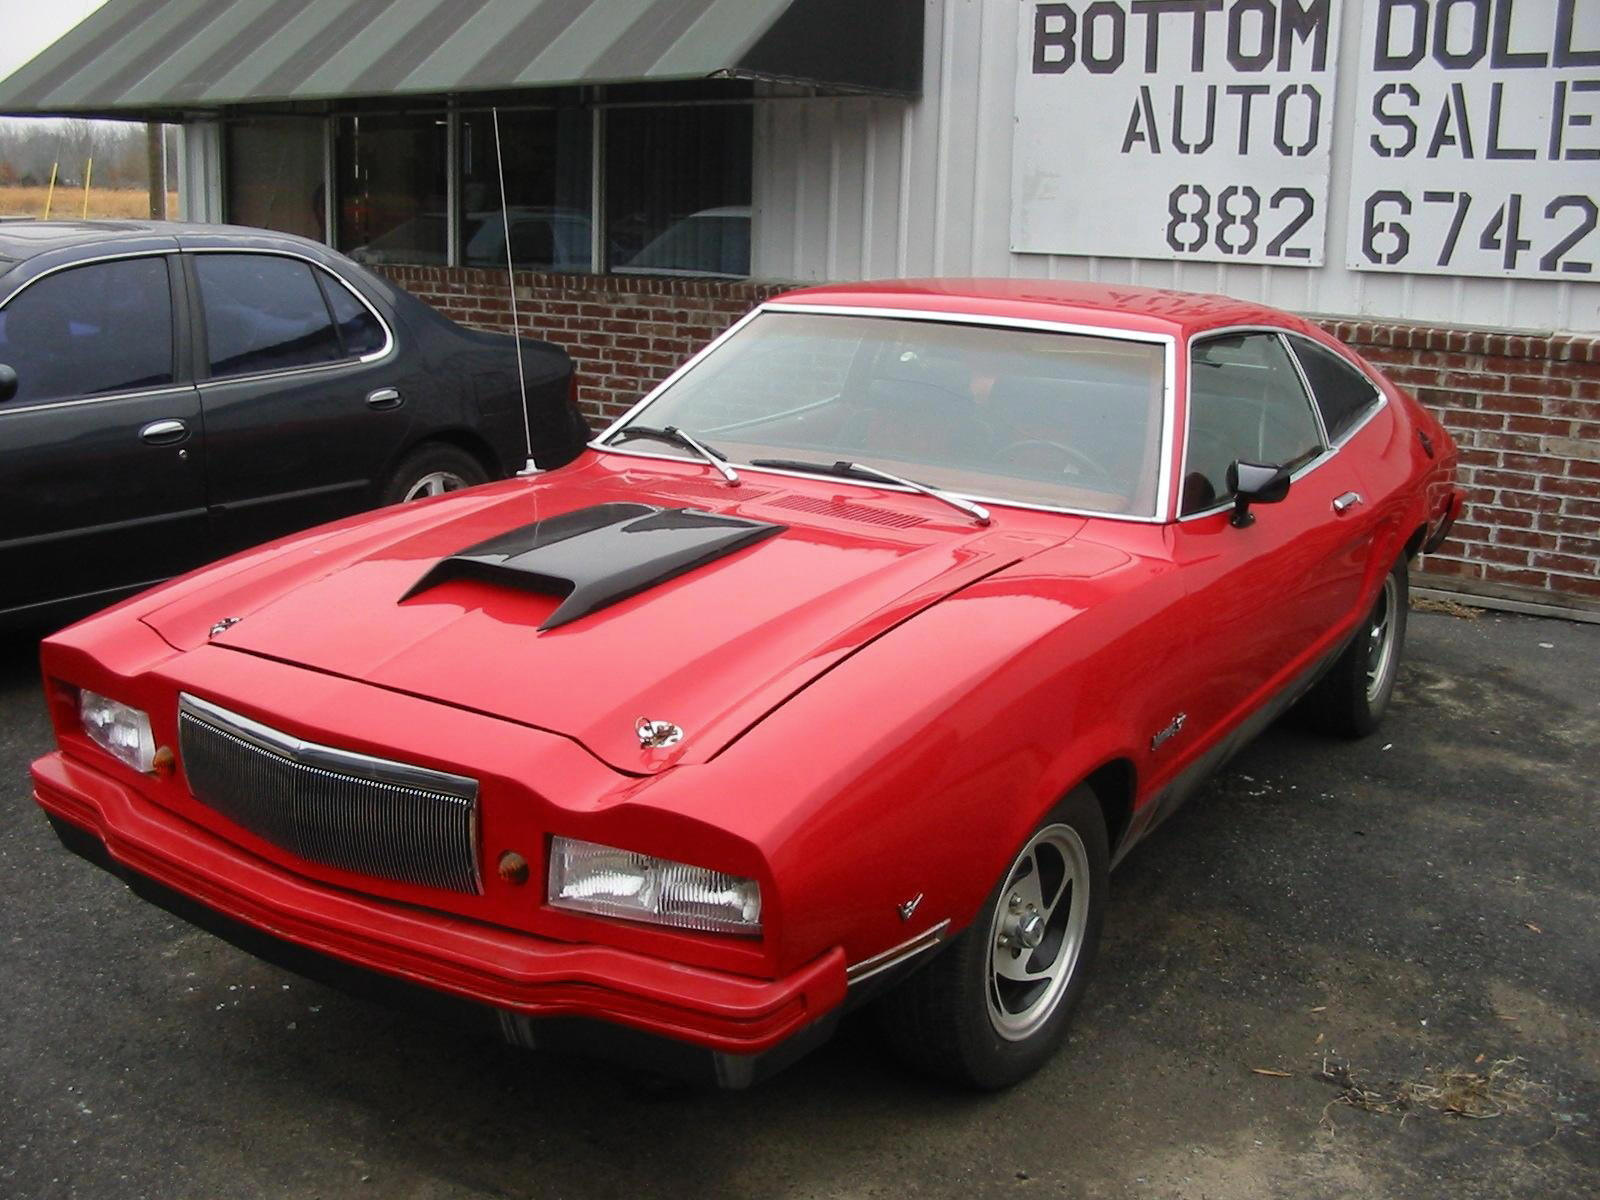 1978 Mustang 2 Mach 1 For Sale